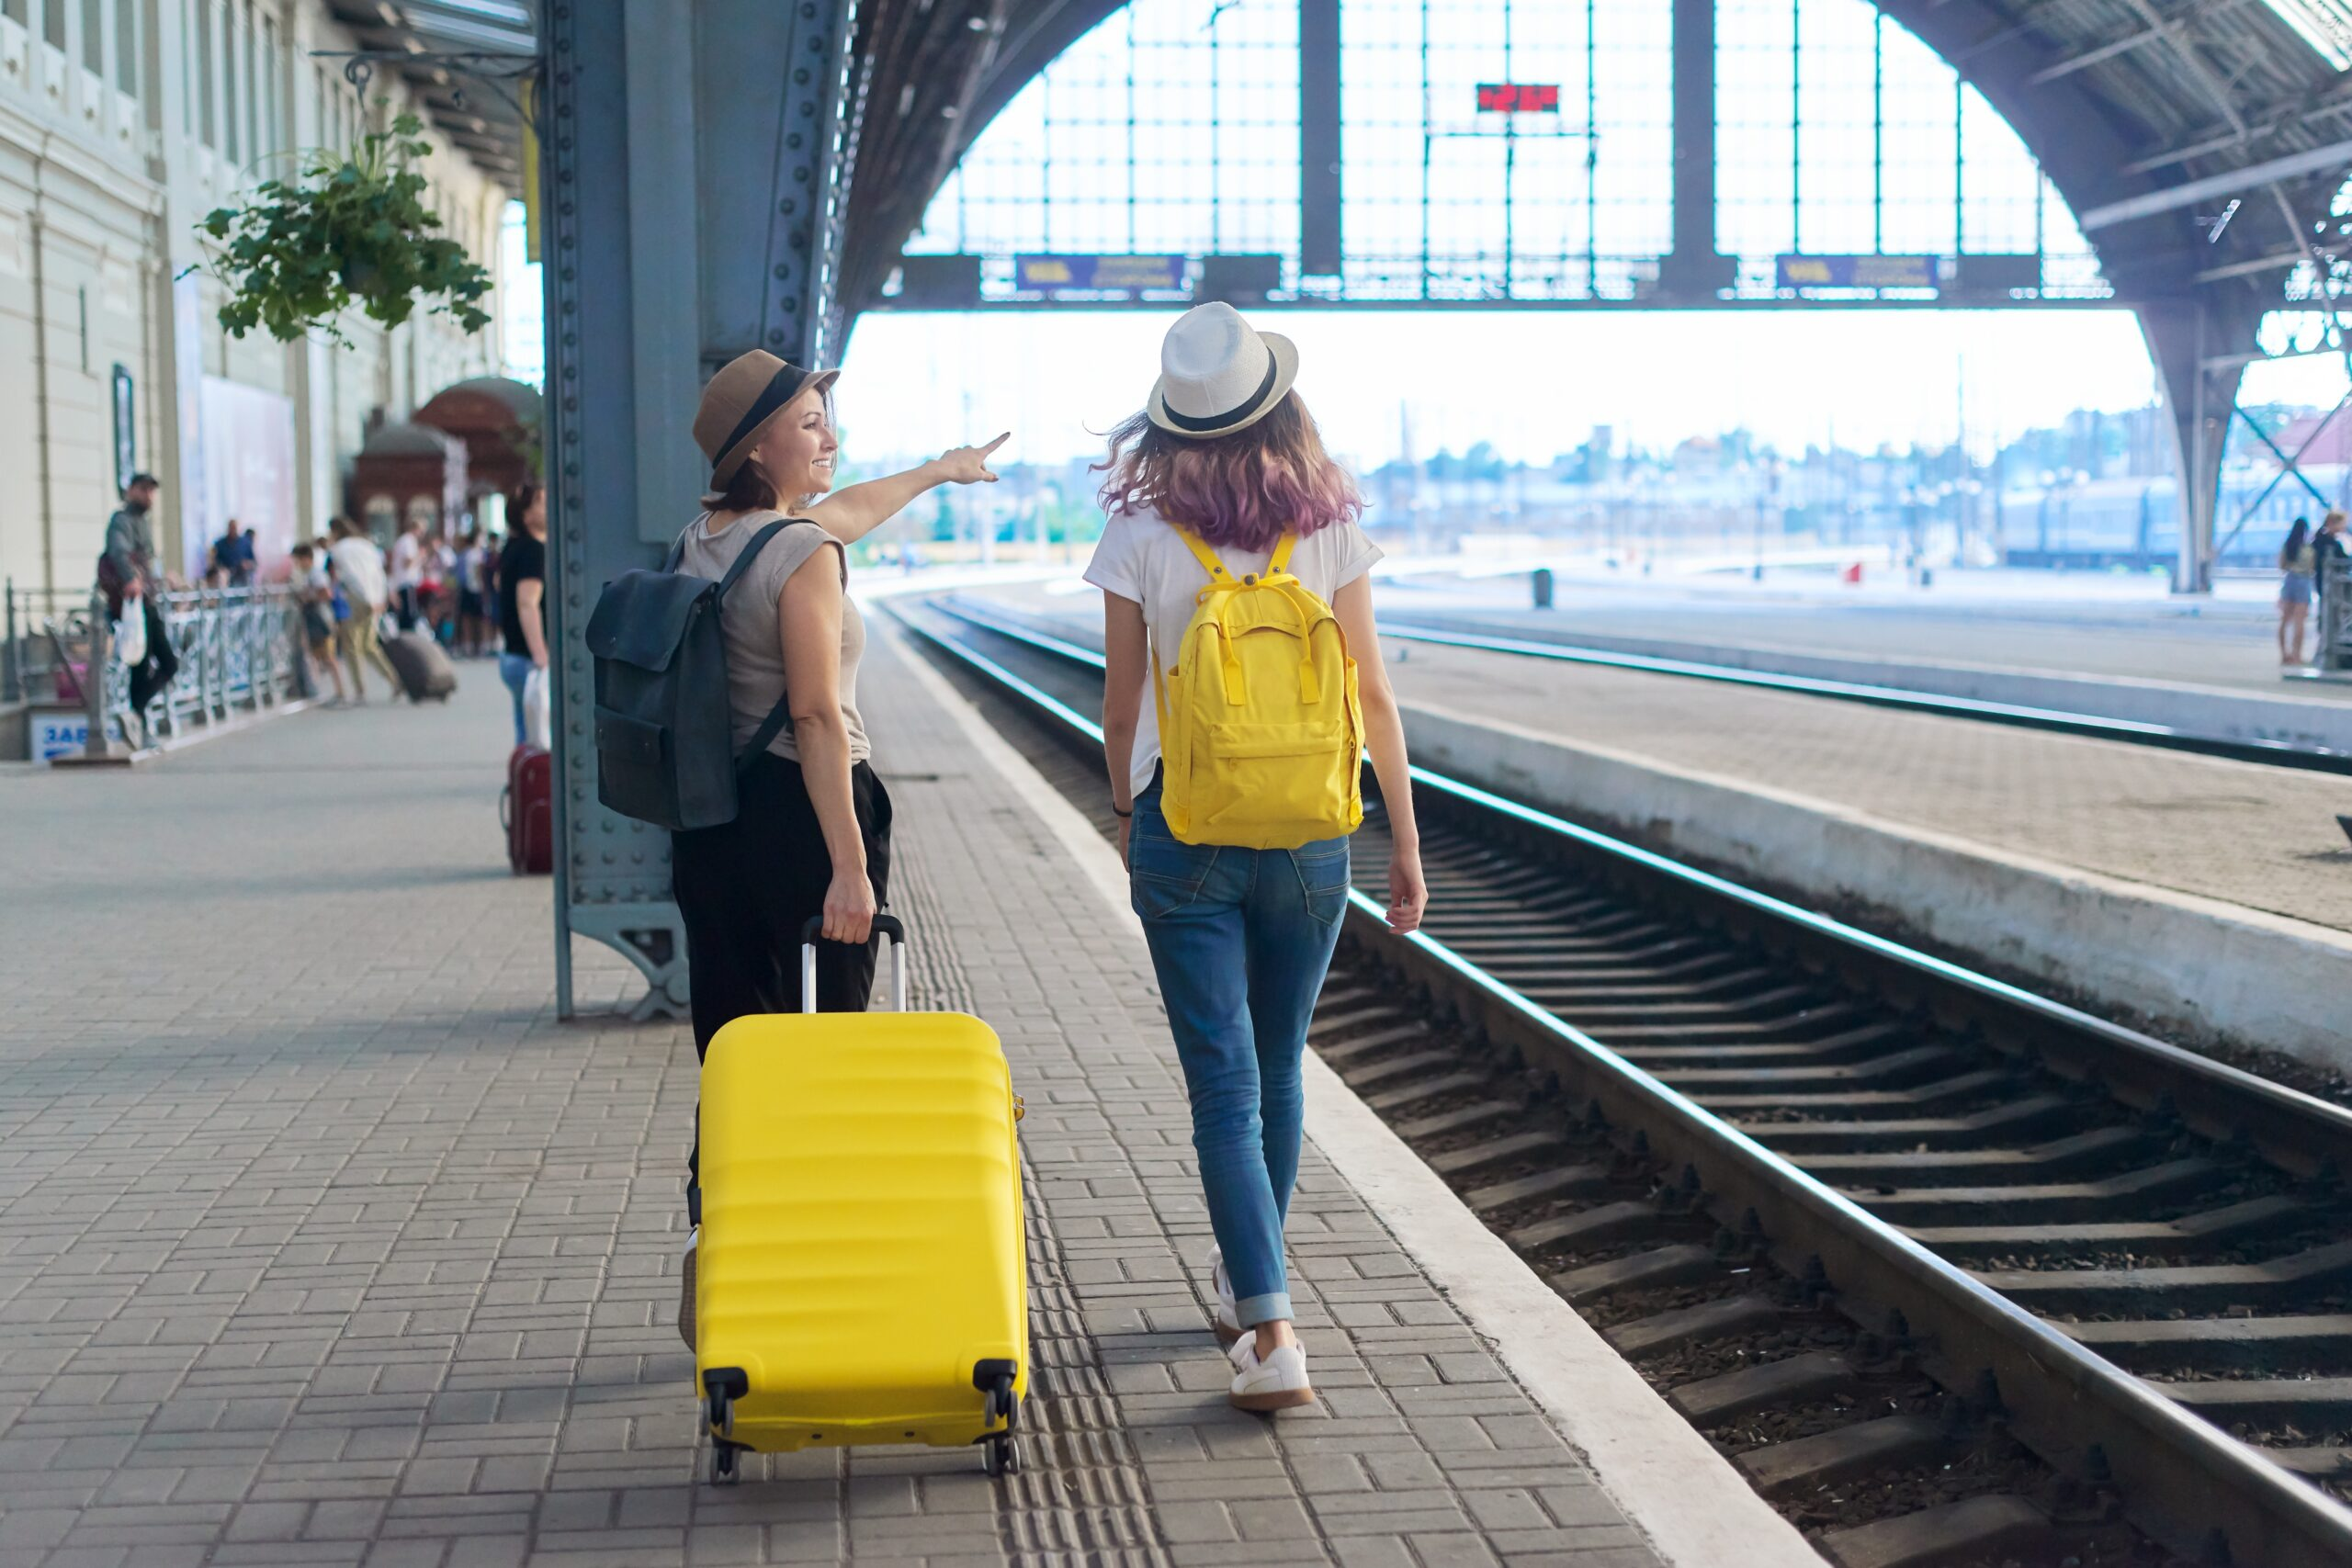 Two woman in a train station, one has a yellow suitcase and the other has a yellow backpack.